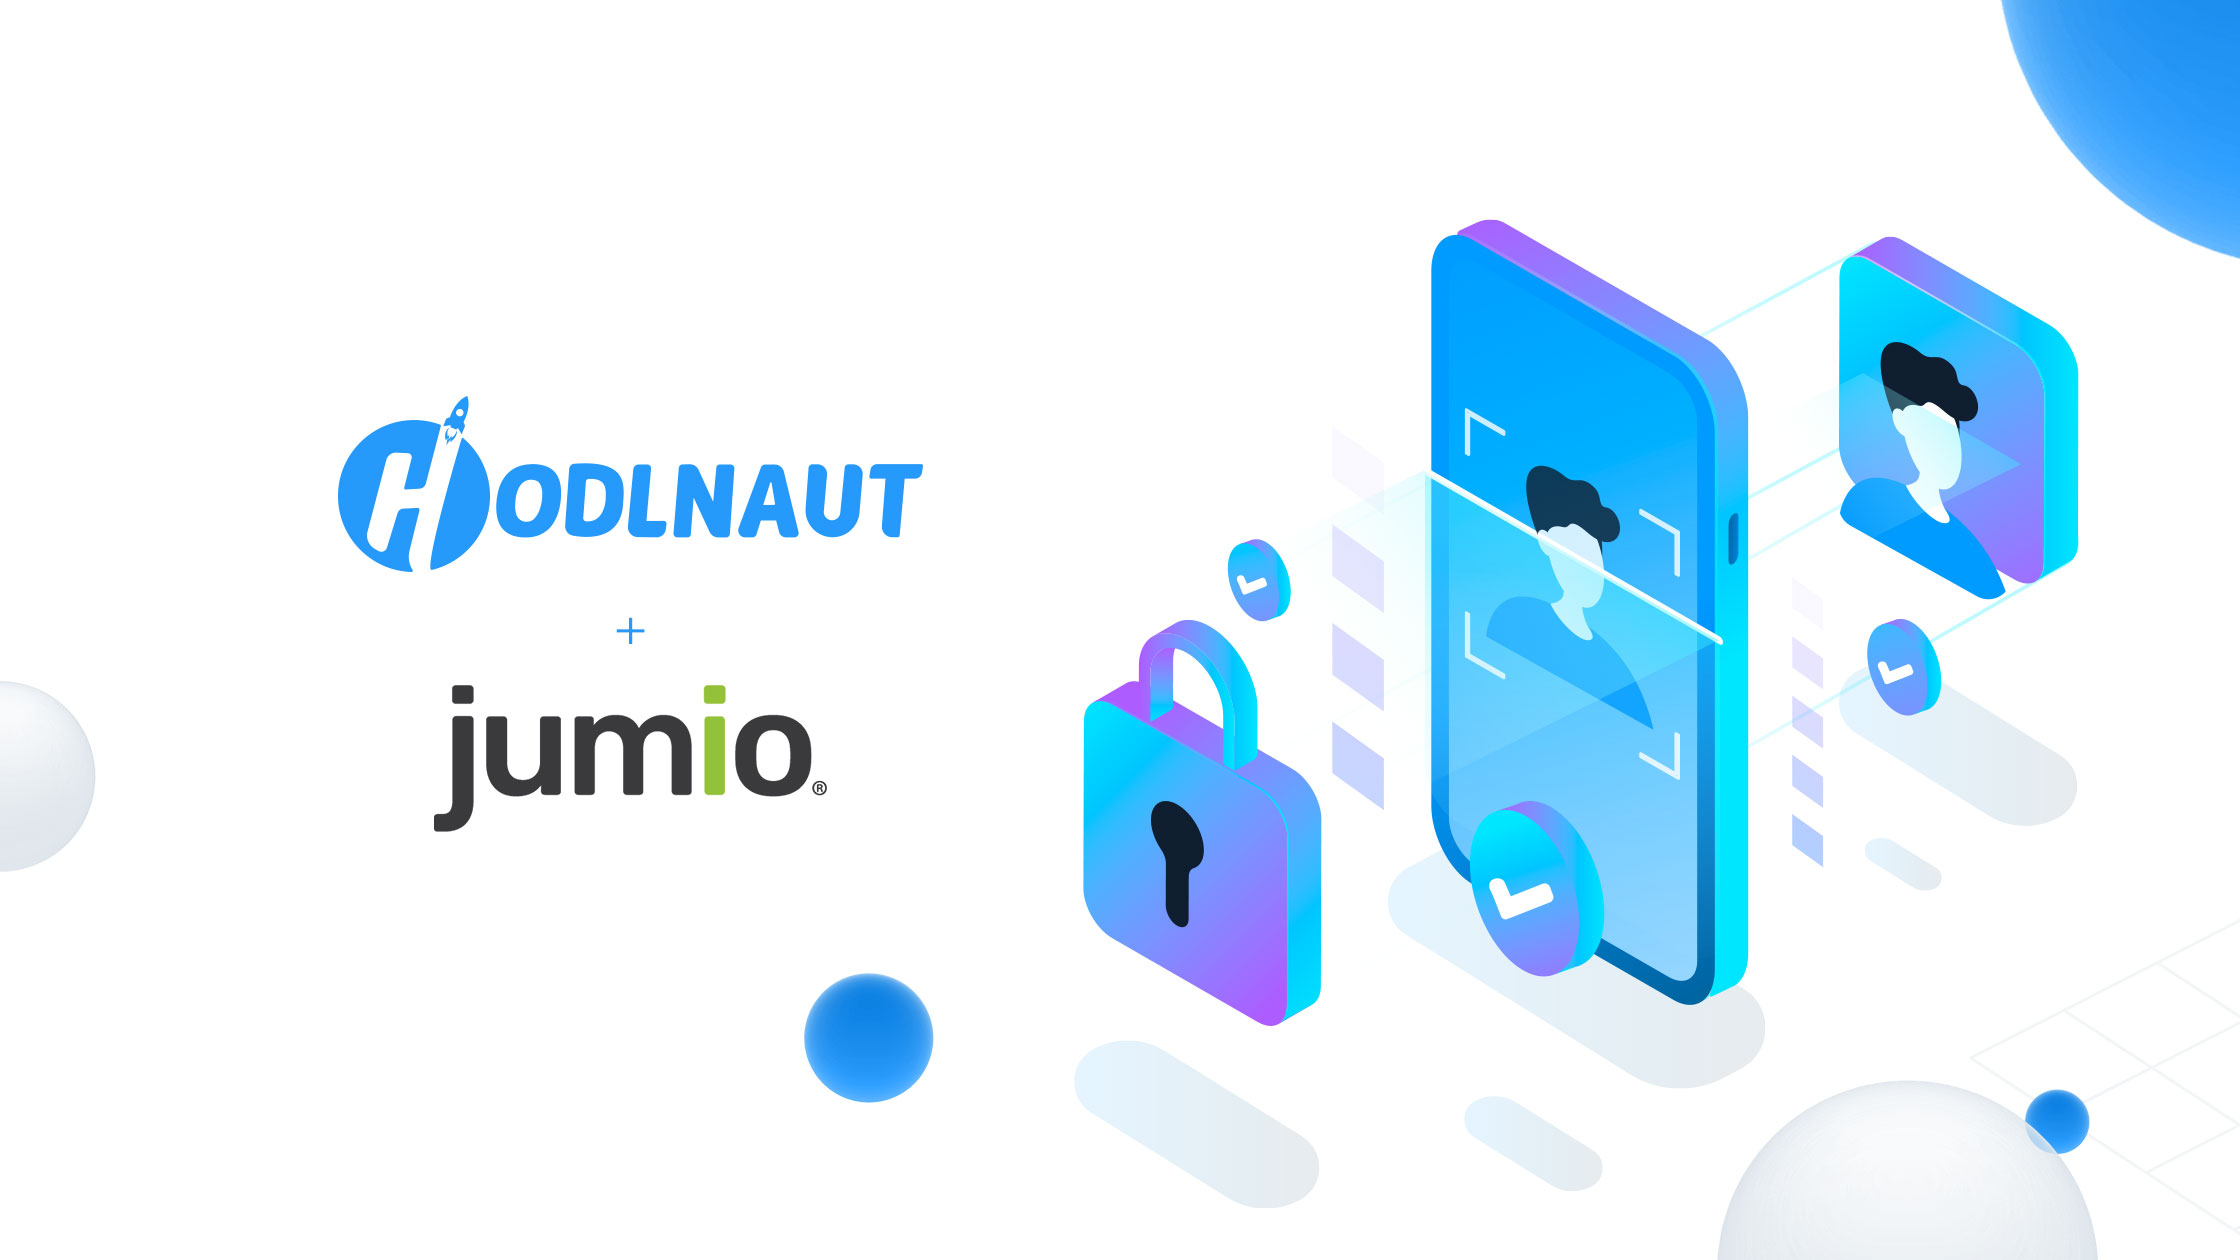 Hodlnaut Selects Jumio as its Trusted Partner for New Customer KYC and Onboarding